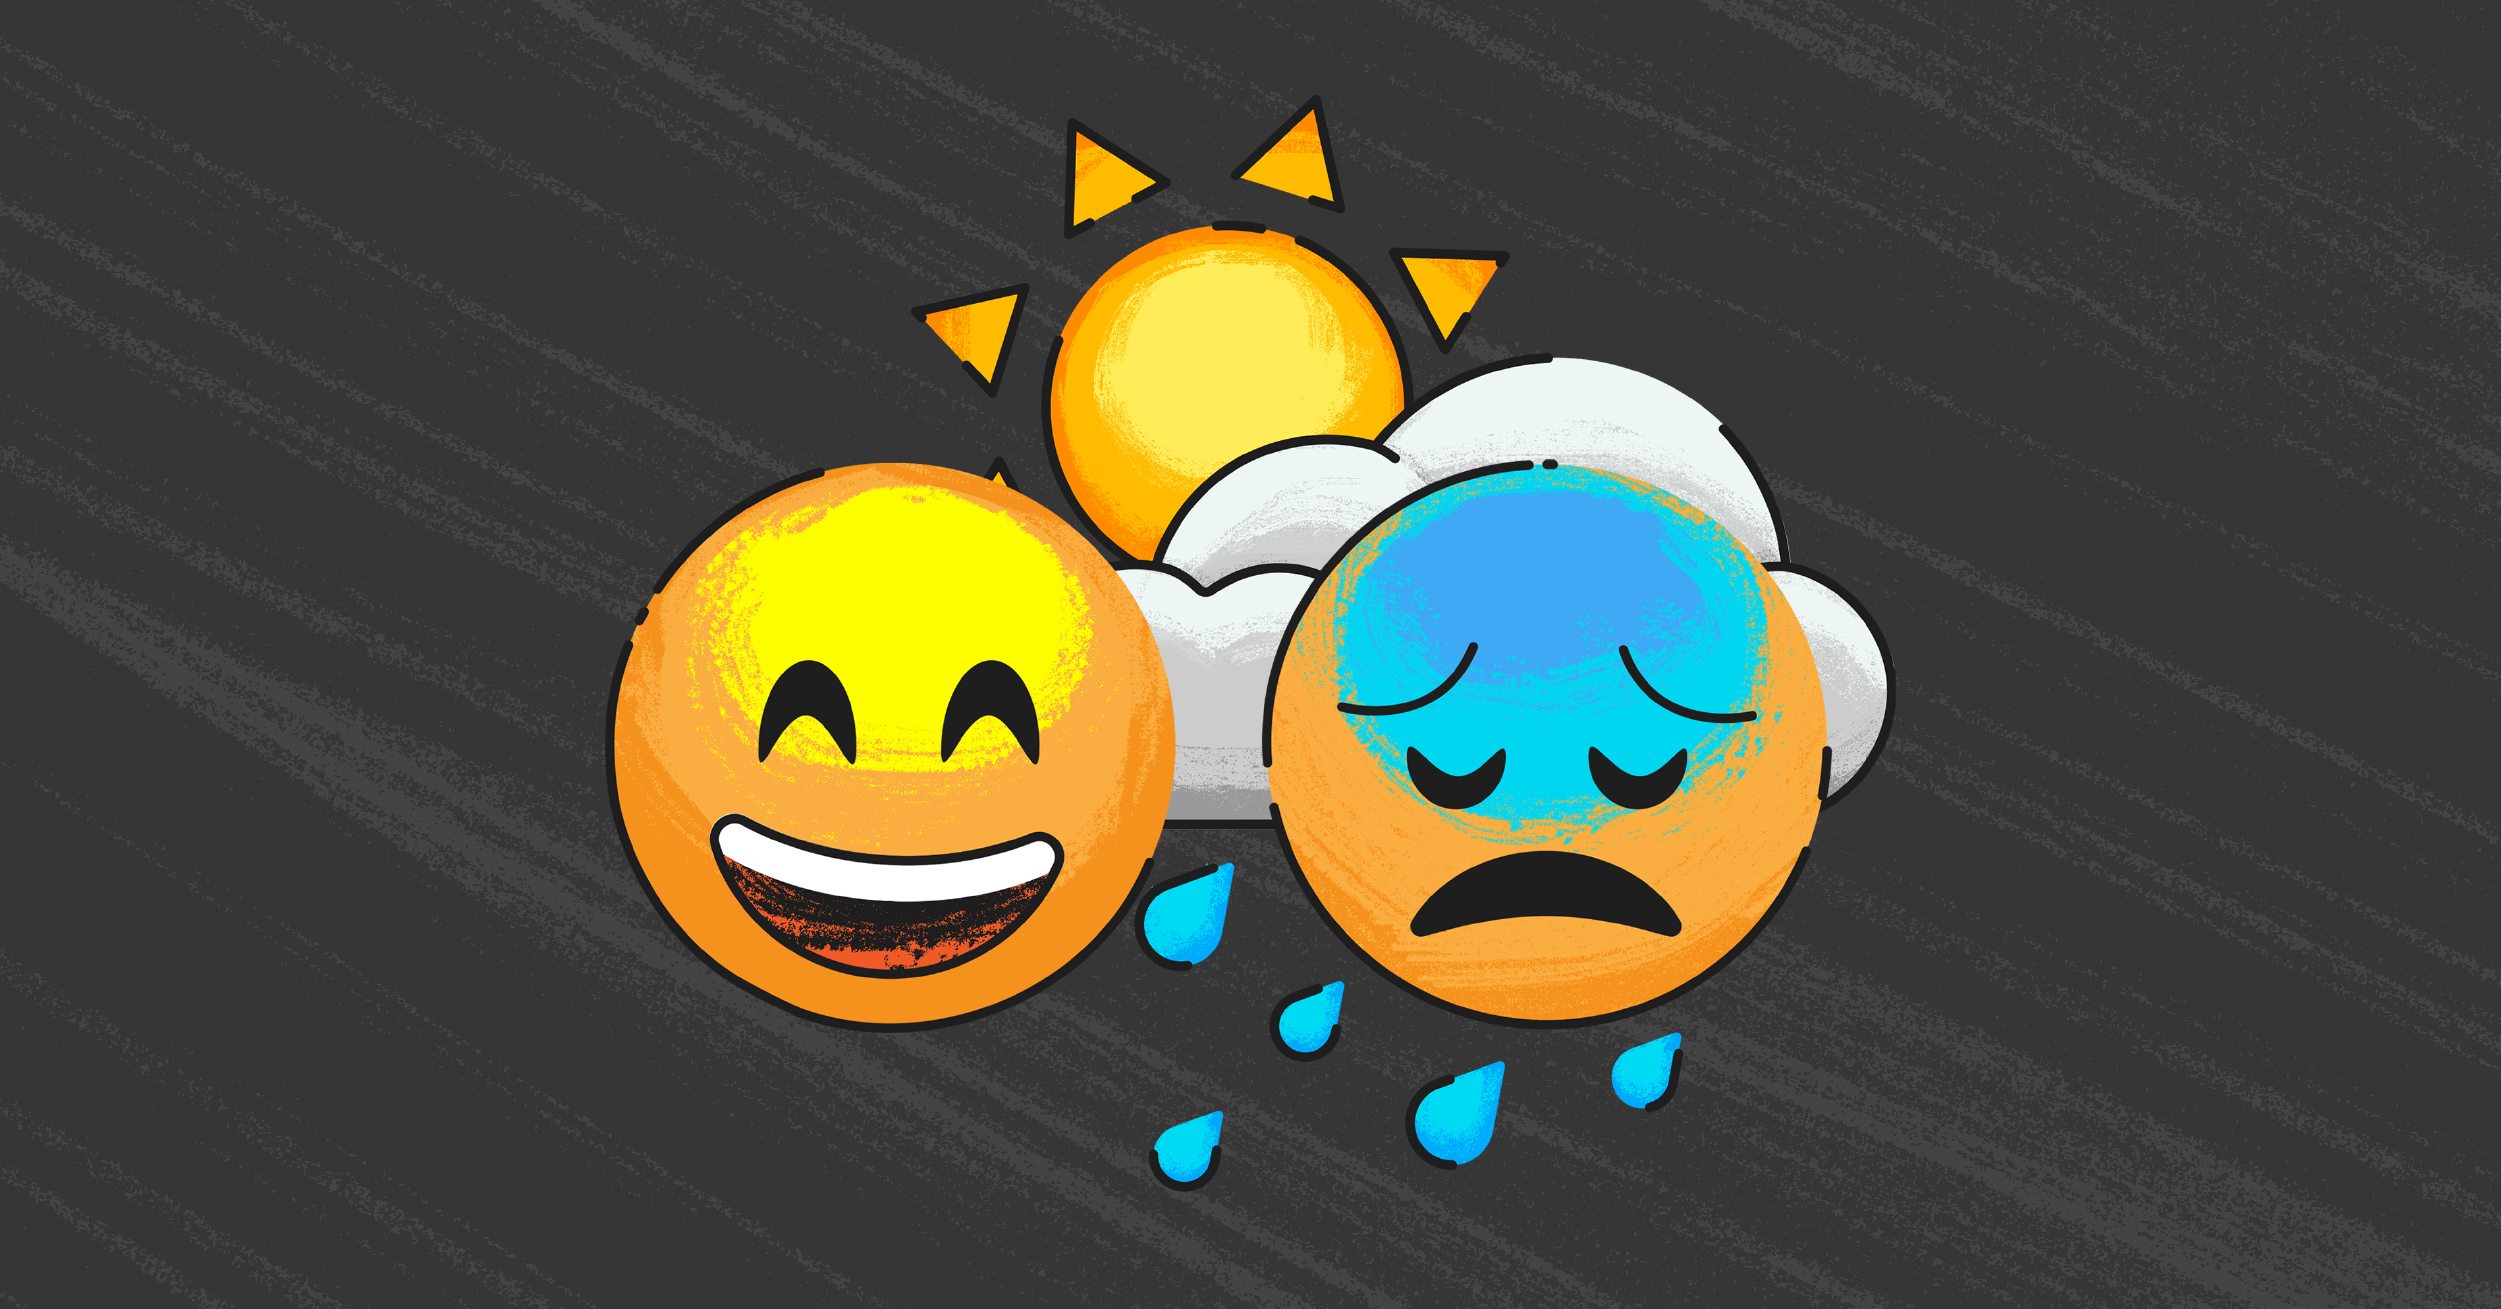 2020 research header with a laughing emoji and a crying emoji against a black background with a sun and clouds